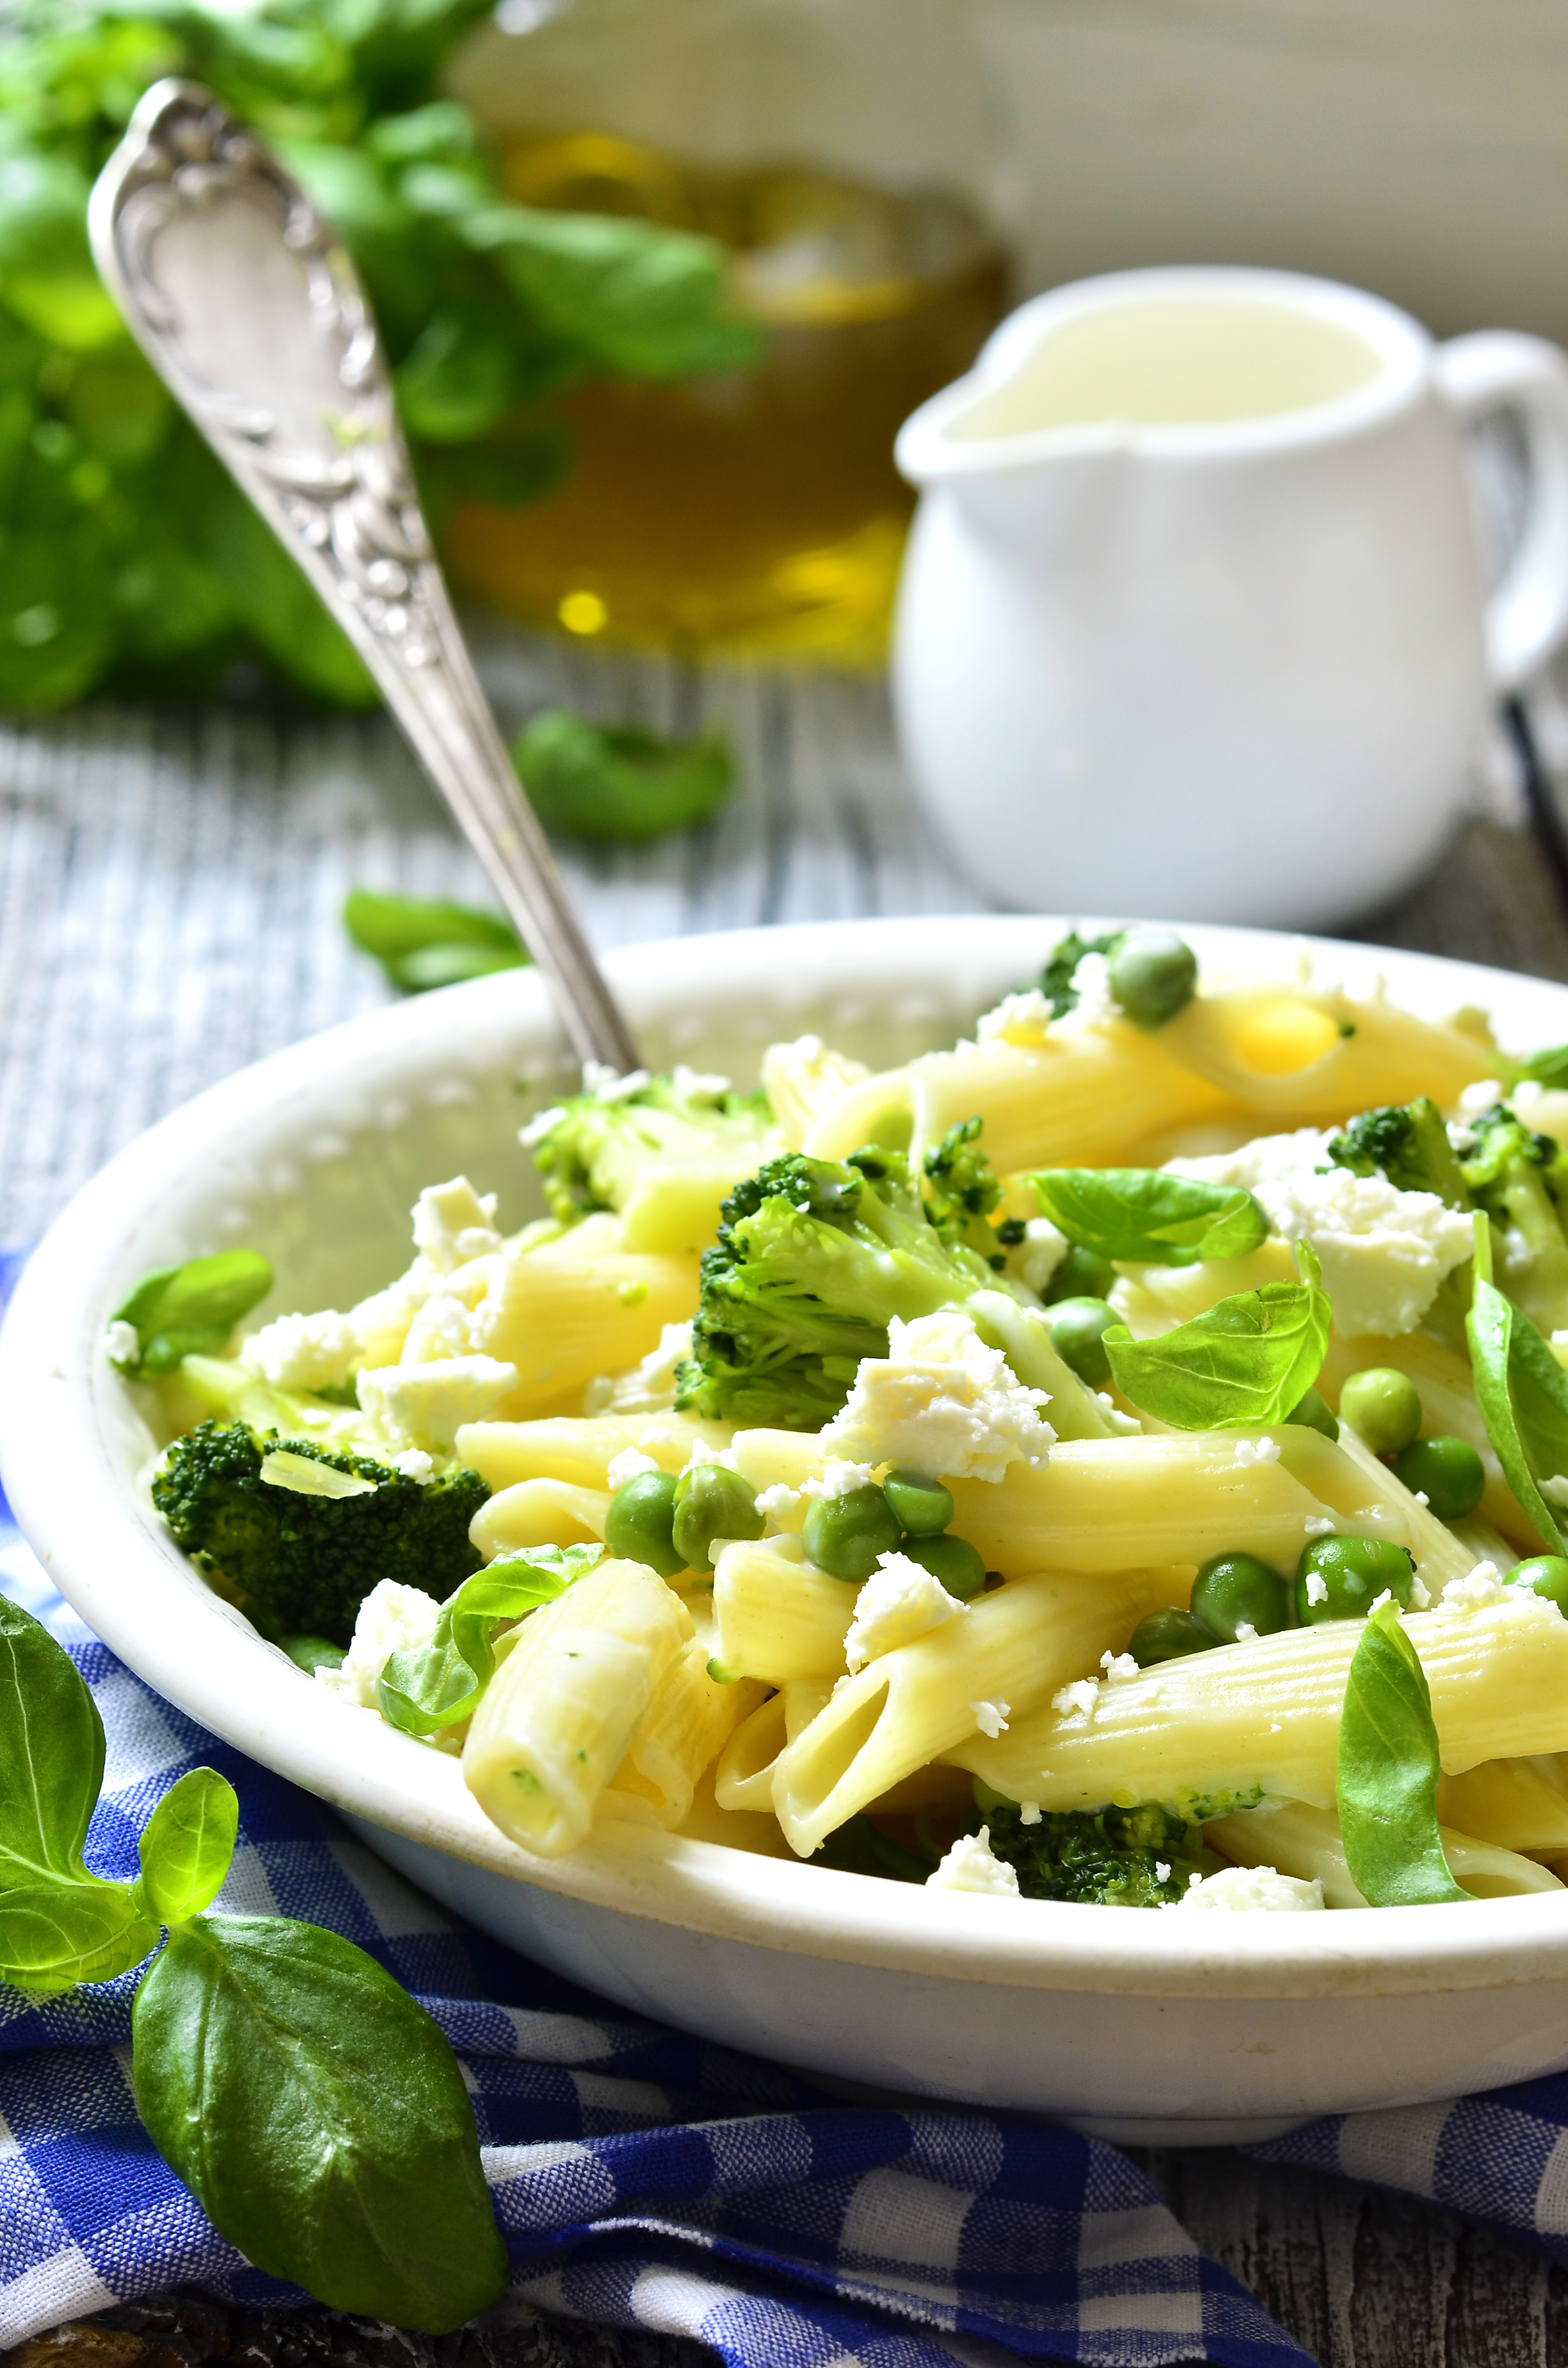 Penne with green vegetables and feta cheese in cream sause.